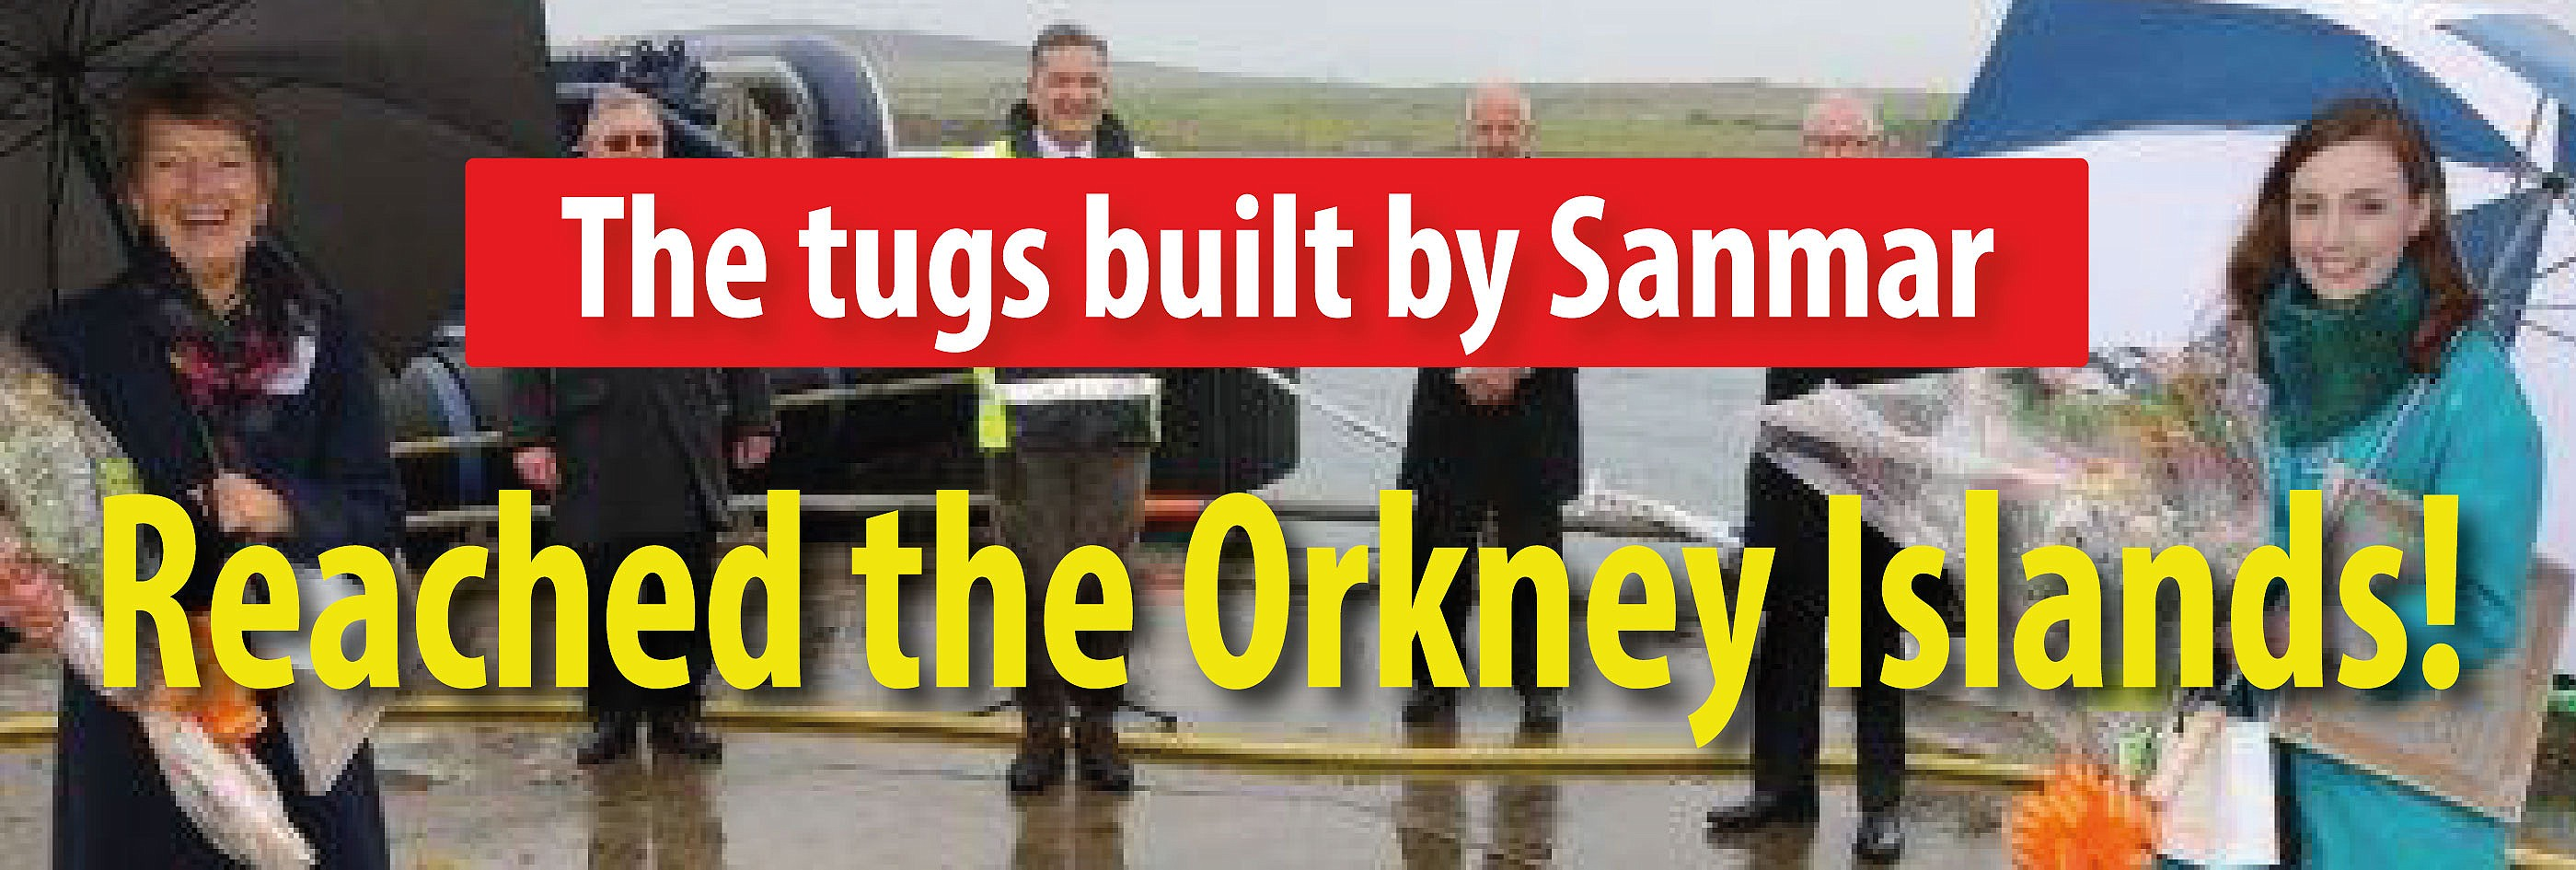 The tugs built by Sanmar have reached the Orkney Islands!